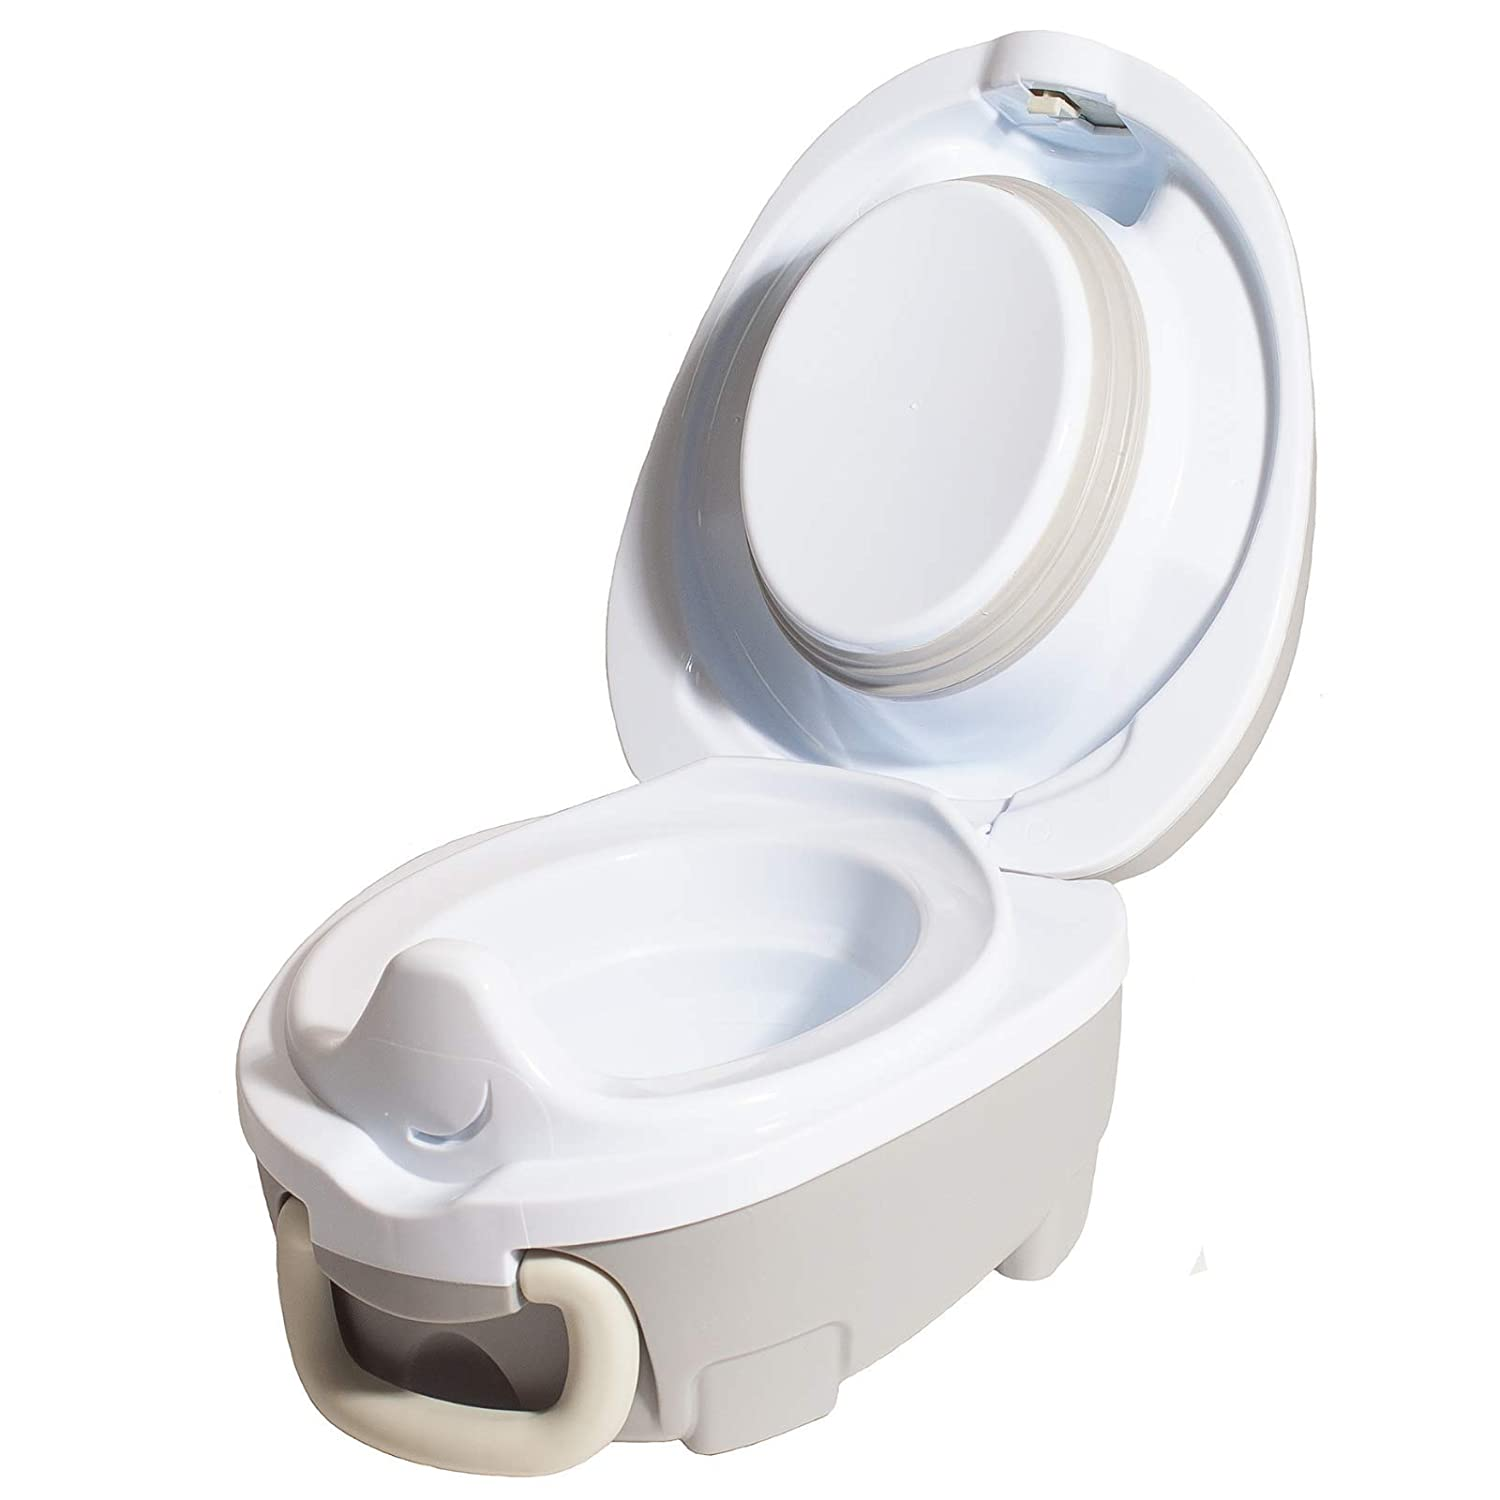 Award-Winning Portable Toddler Toilet Seat for Kids to Take Everywhere My Carry Potty Grey Travel Potty